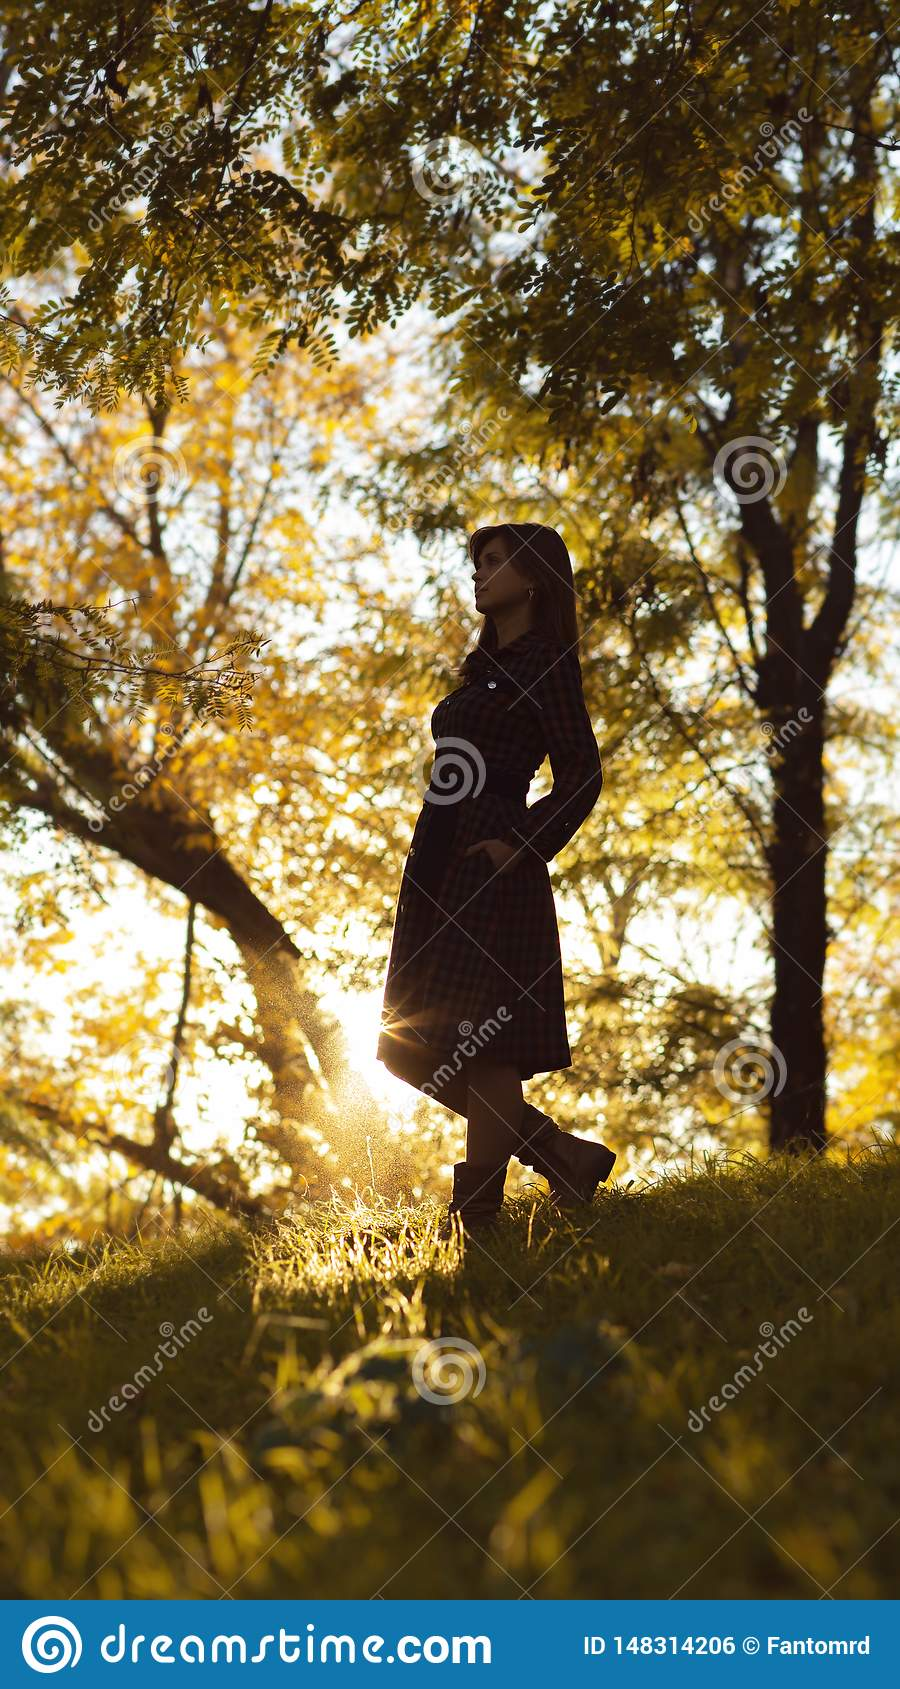 Silhouette of a young woman ascending on hill at sunset, figure girl in the autumn landscape in a dress, the concept of human and